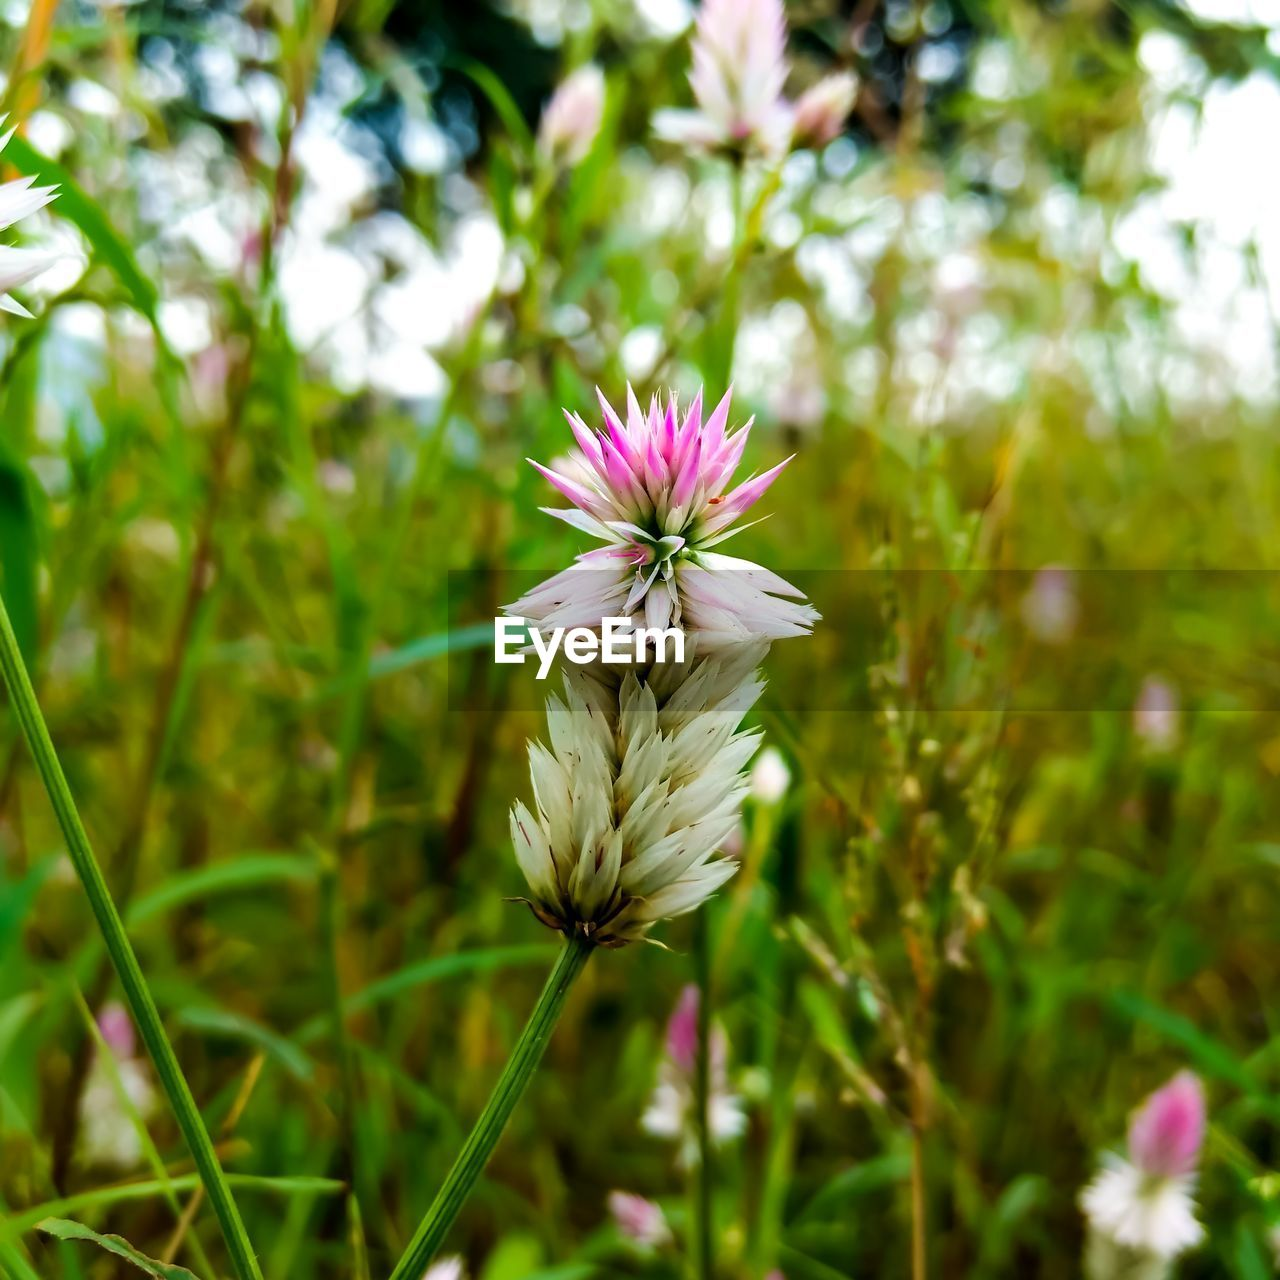 flower, fragility, nature, petal, flower head, growth, beauty in nature, freshness, plant, blooming, day, outdoors, no people, focus on foreground, close-up, grass, crocus